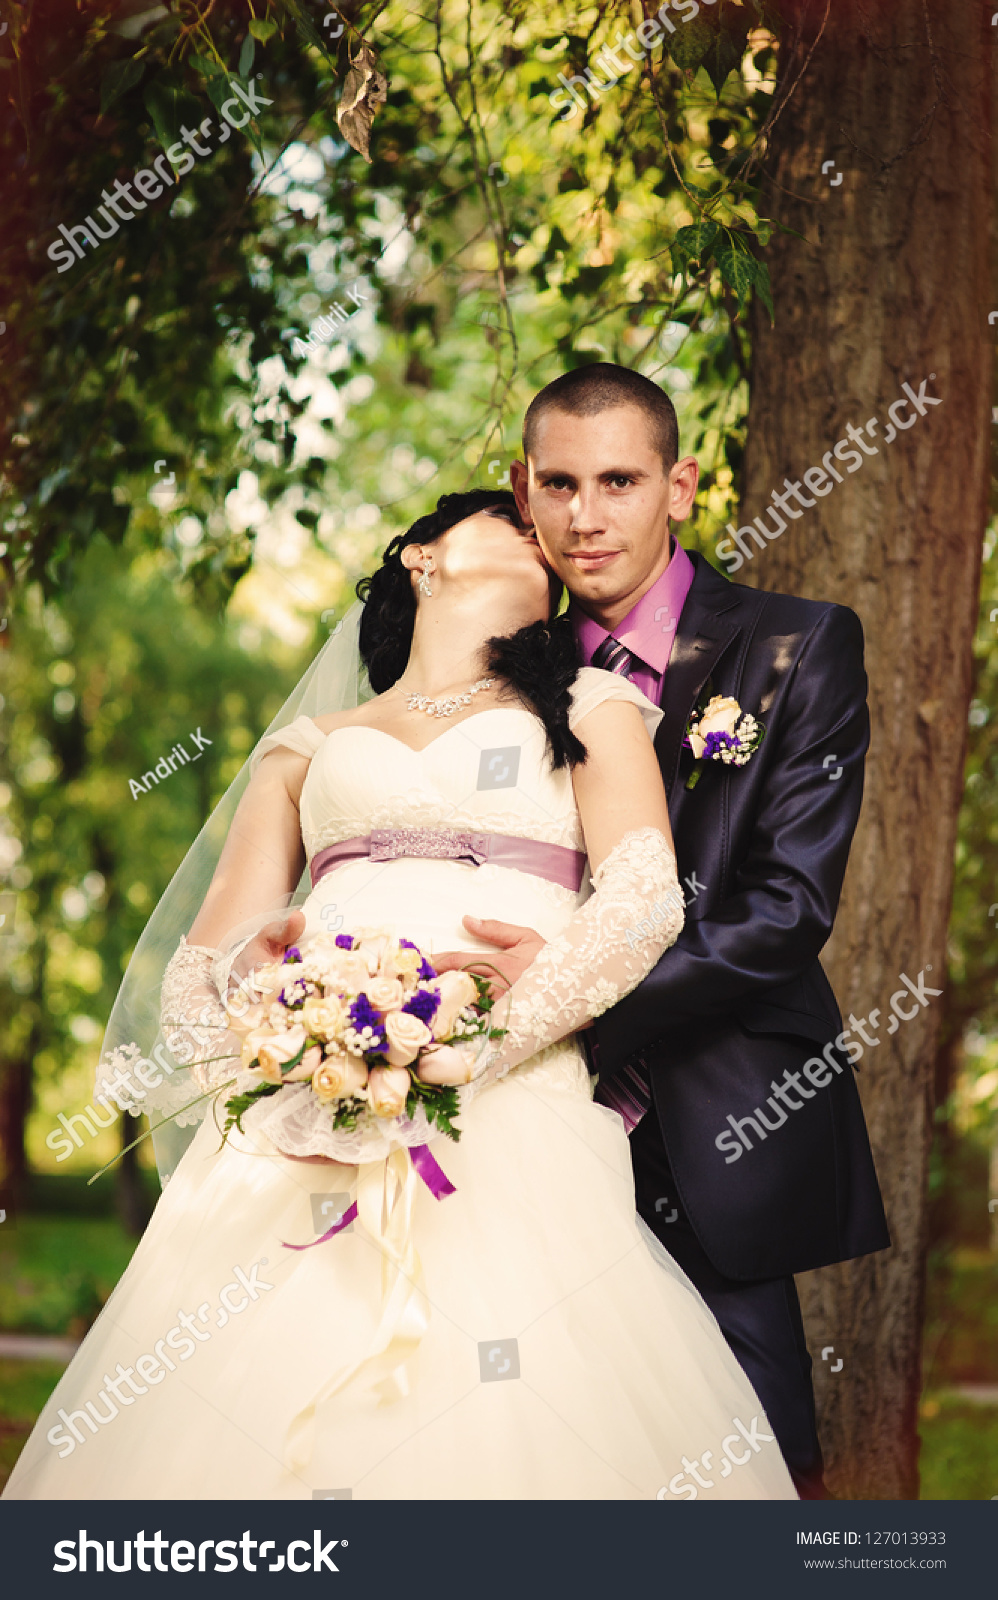 Happy Kiss Bride Groom Near Tree Stock Photo 127013933 - Shutterstock